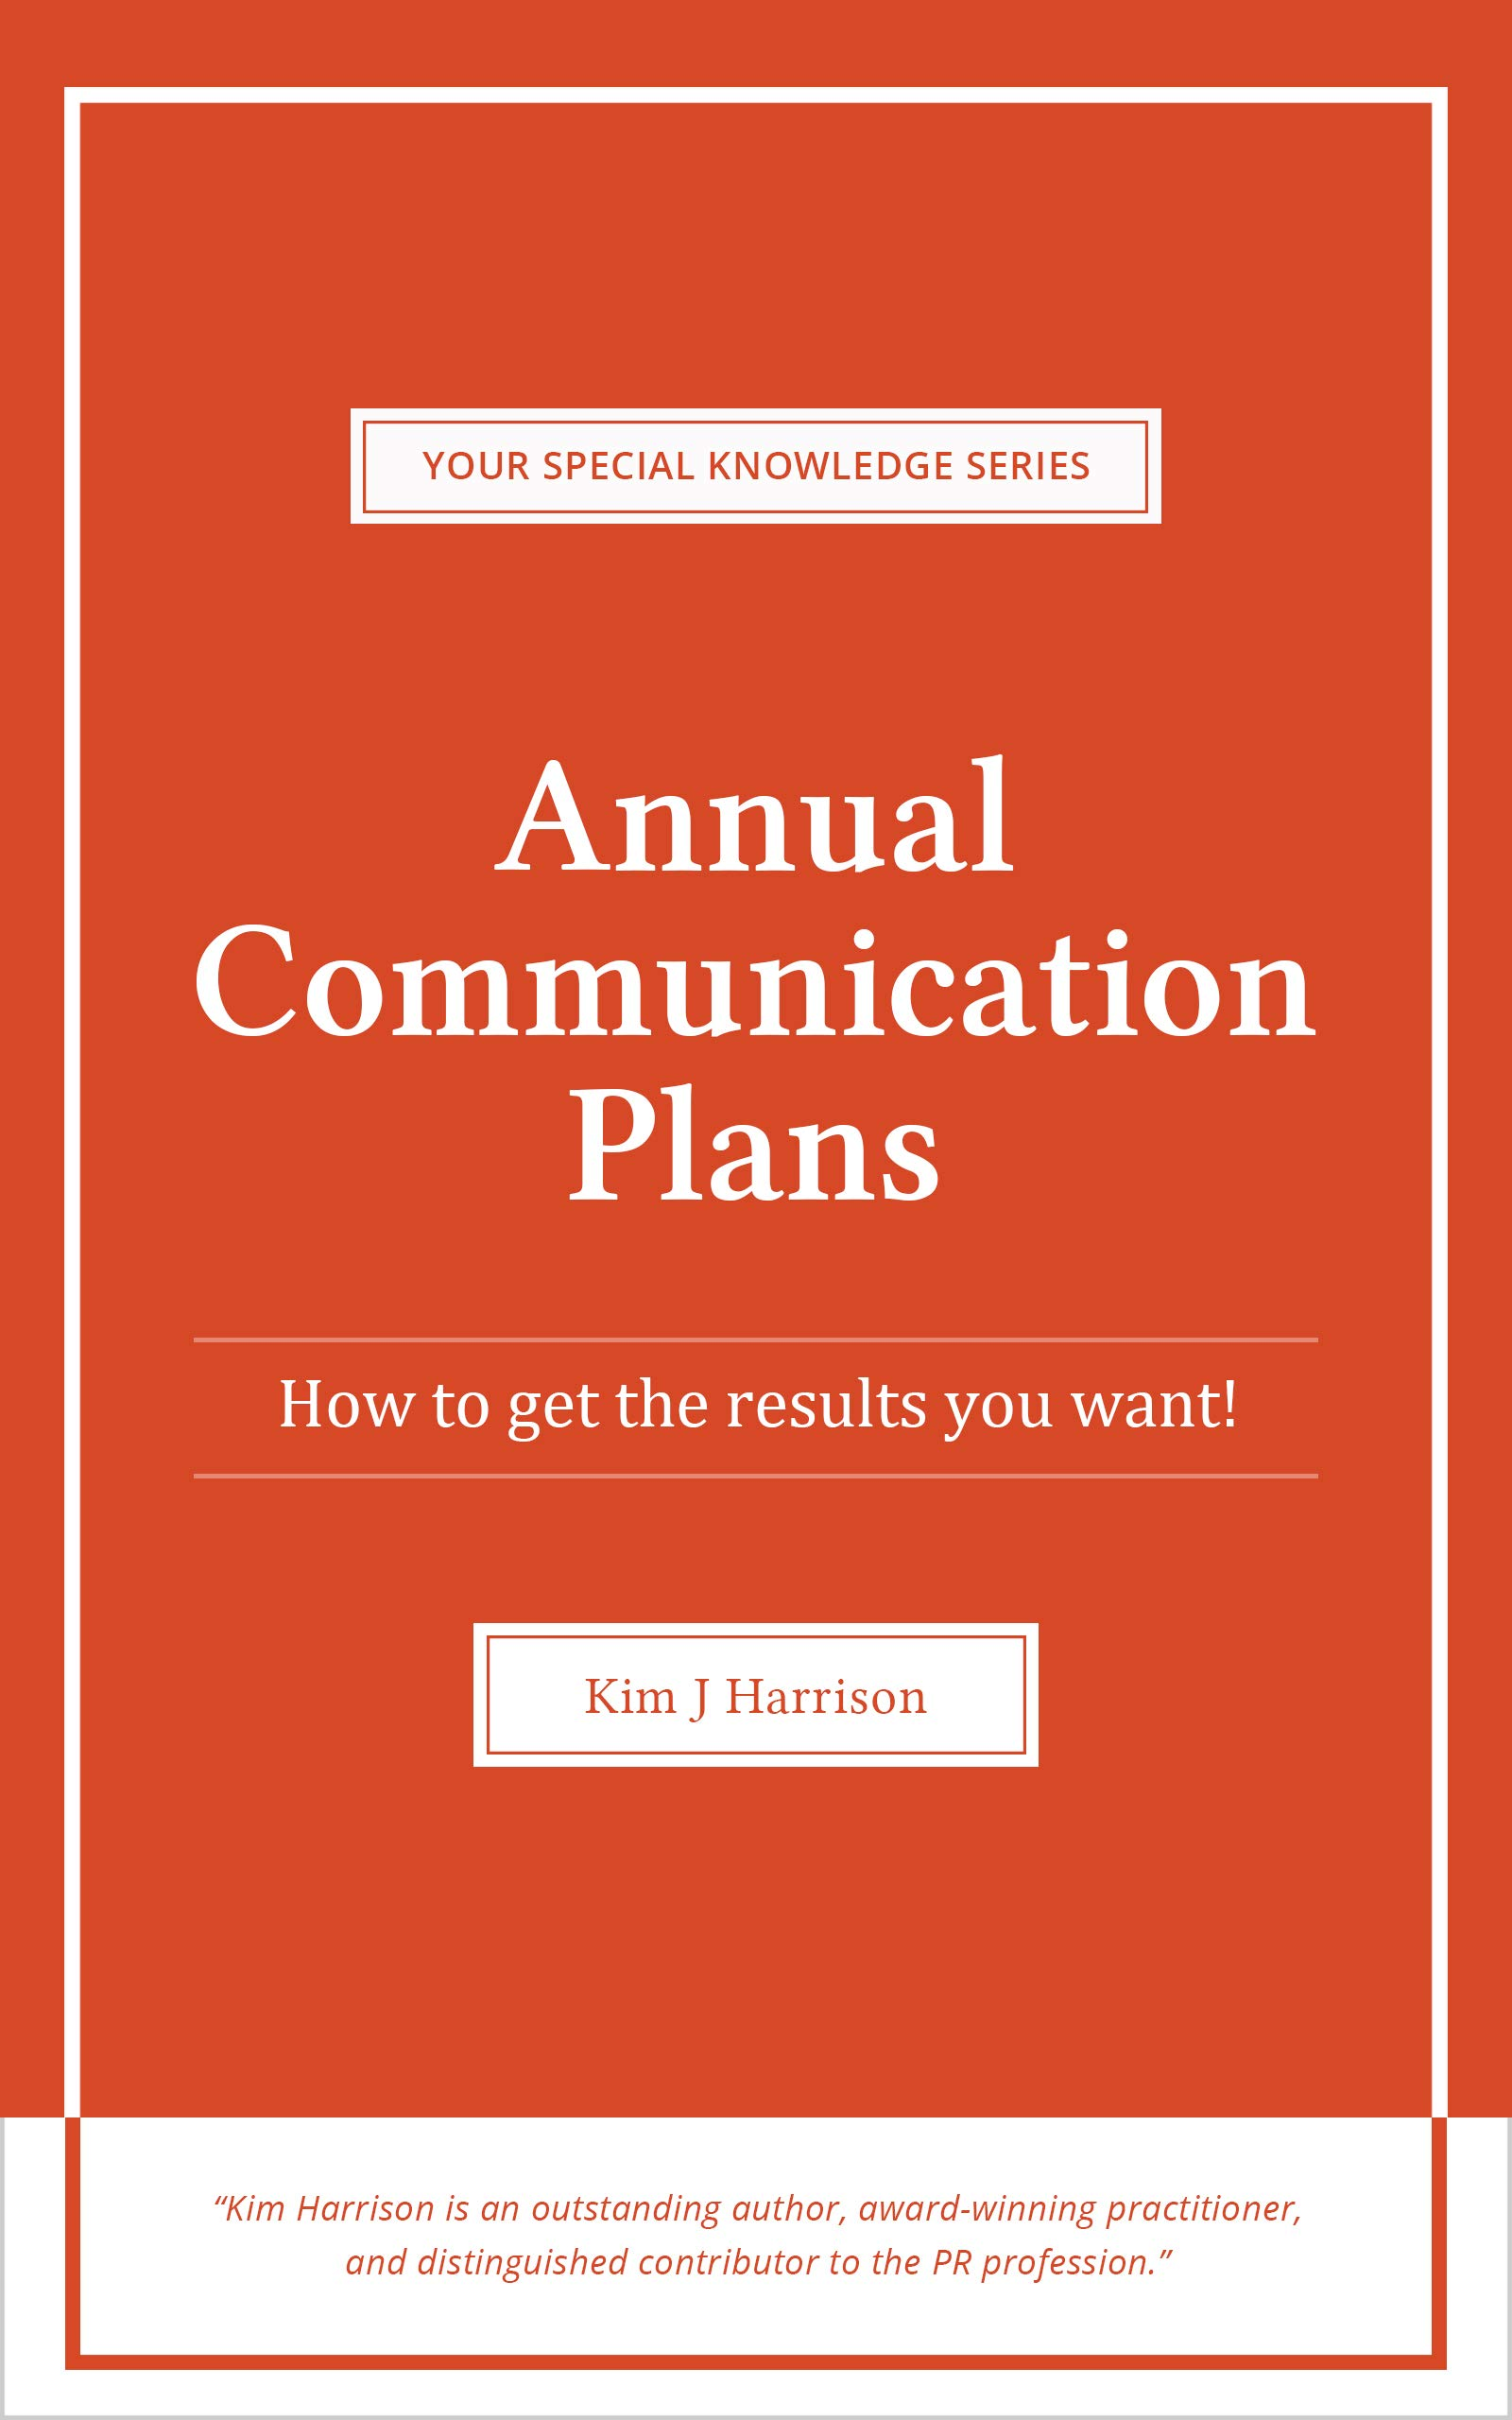 Annual Communication Plans: How to get the results you want! (Your Special Knowledge Series Book 1)